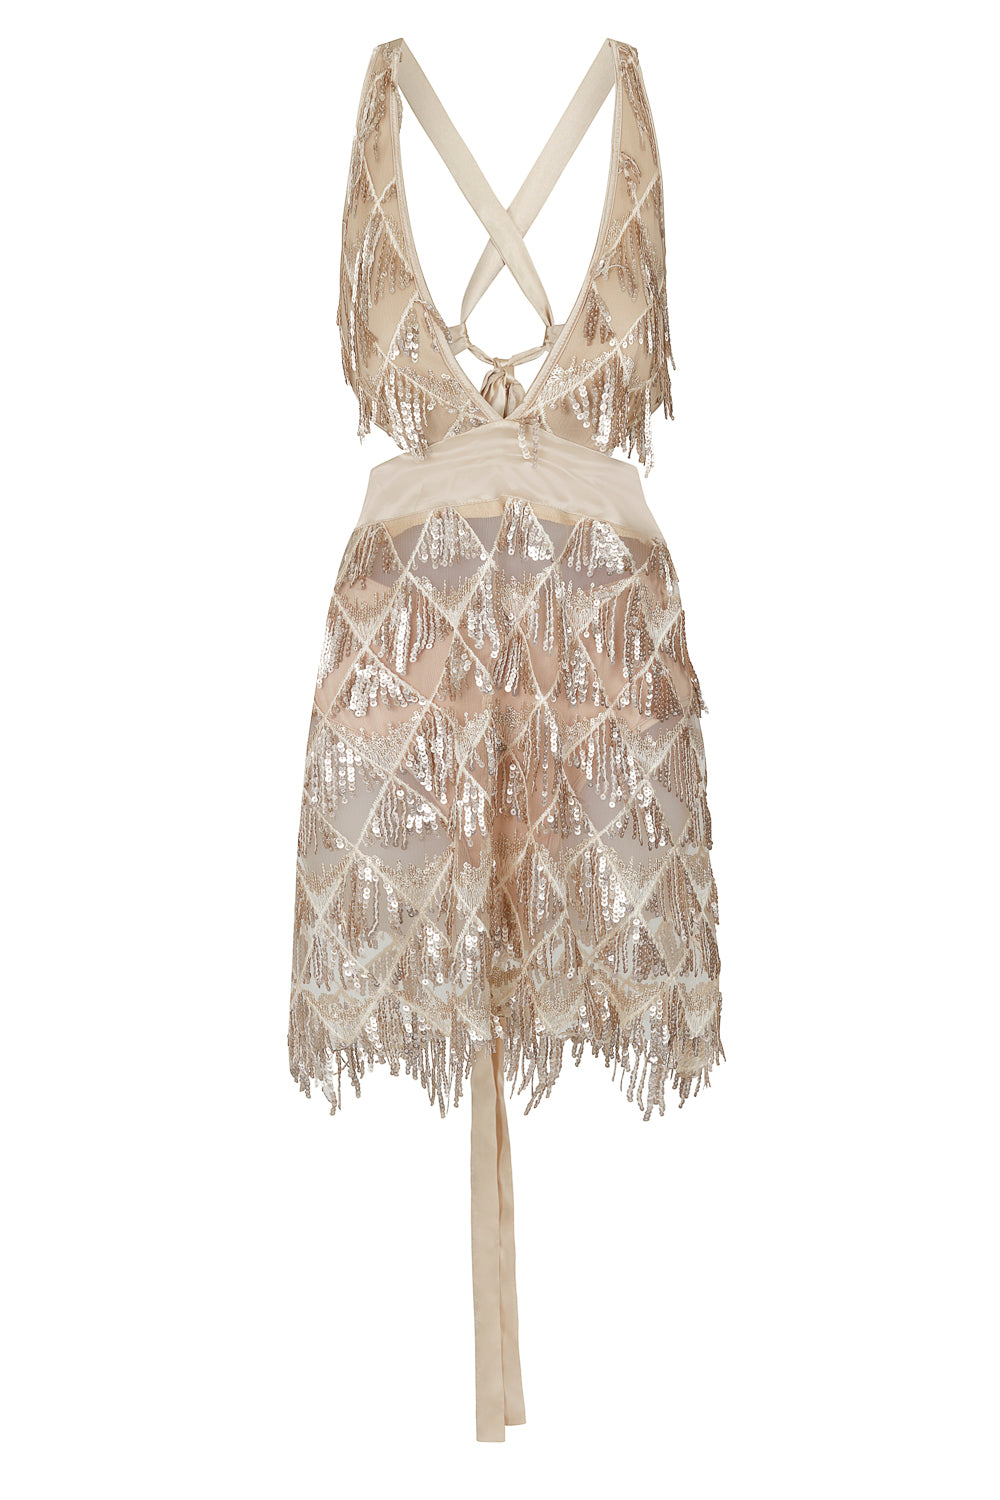 Holly Glam Champagne Gold Ombre Sequin Tassel Fringe Sheer Dress